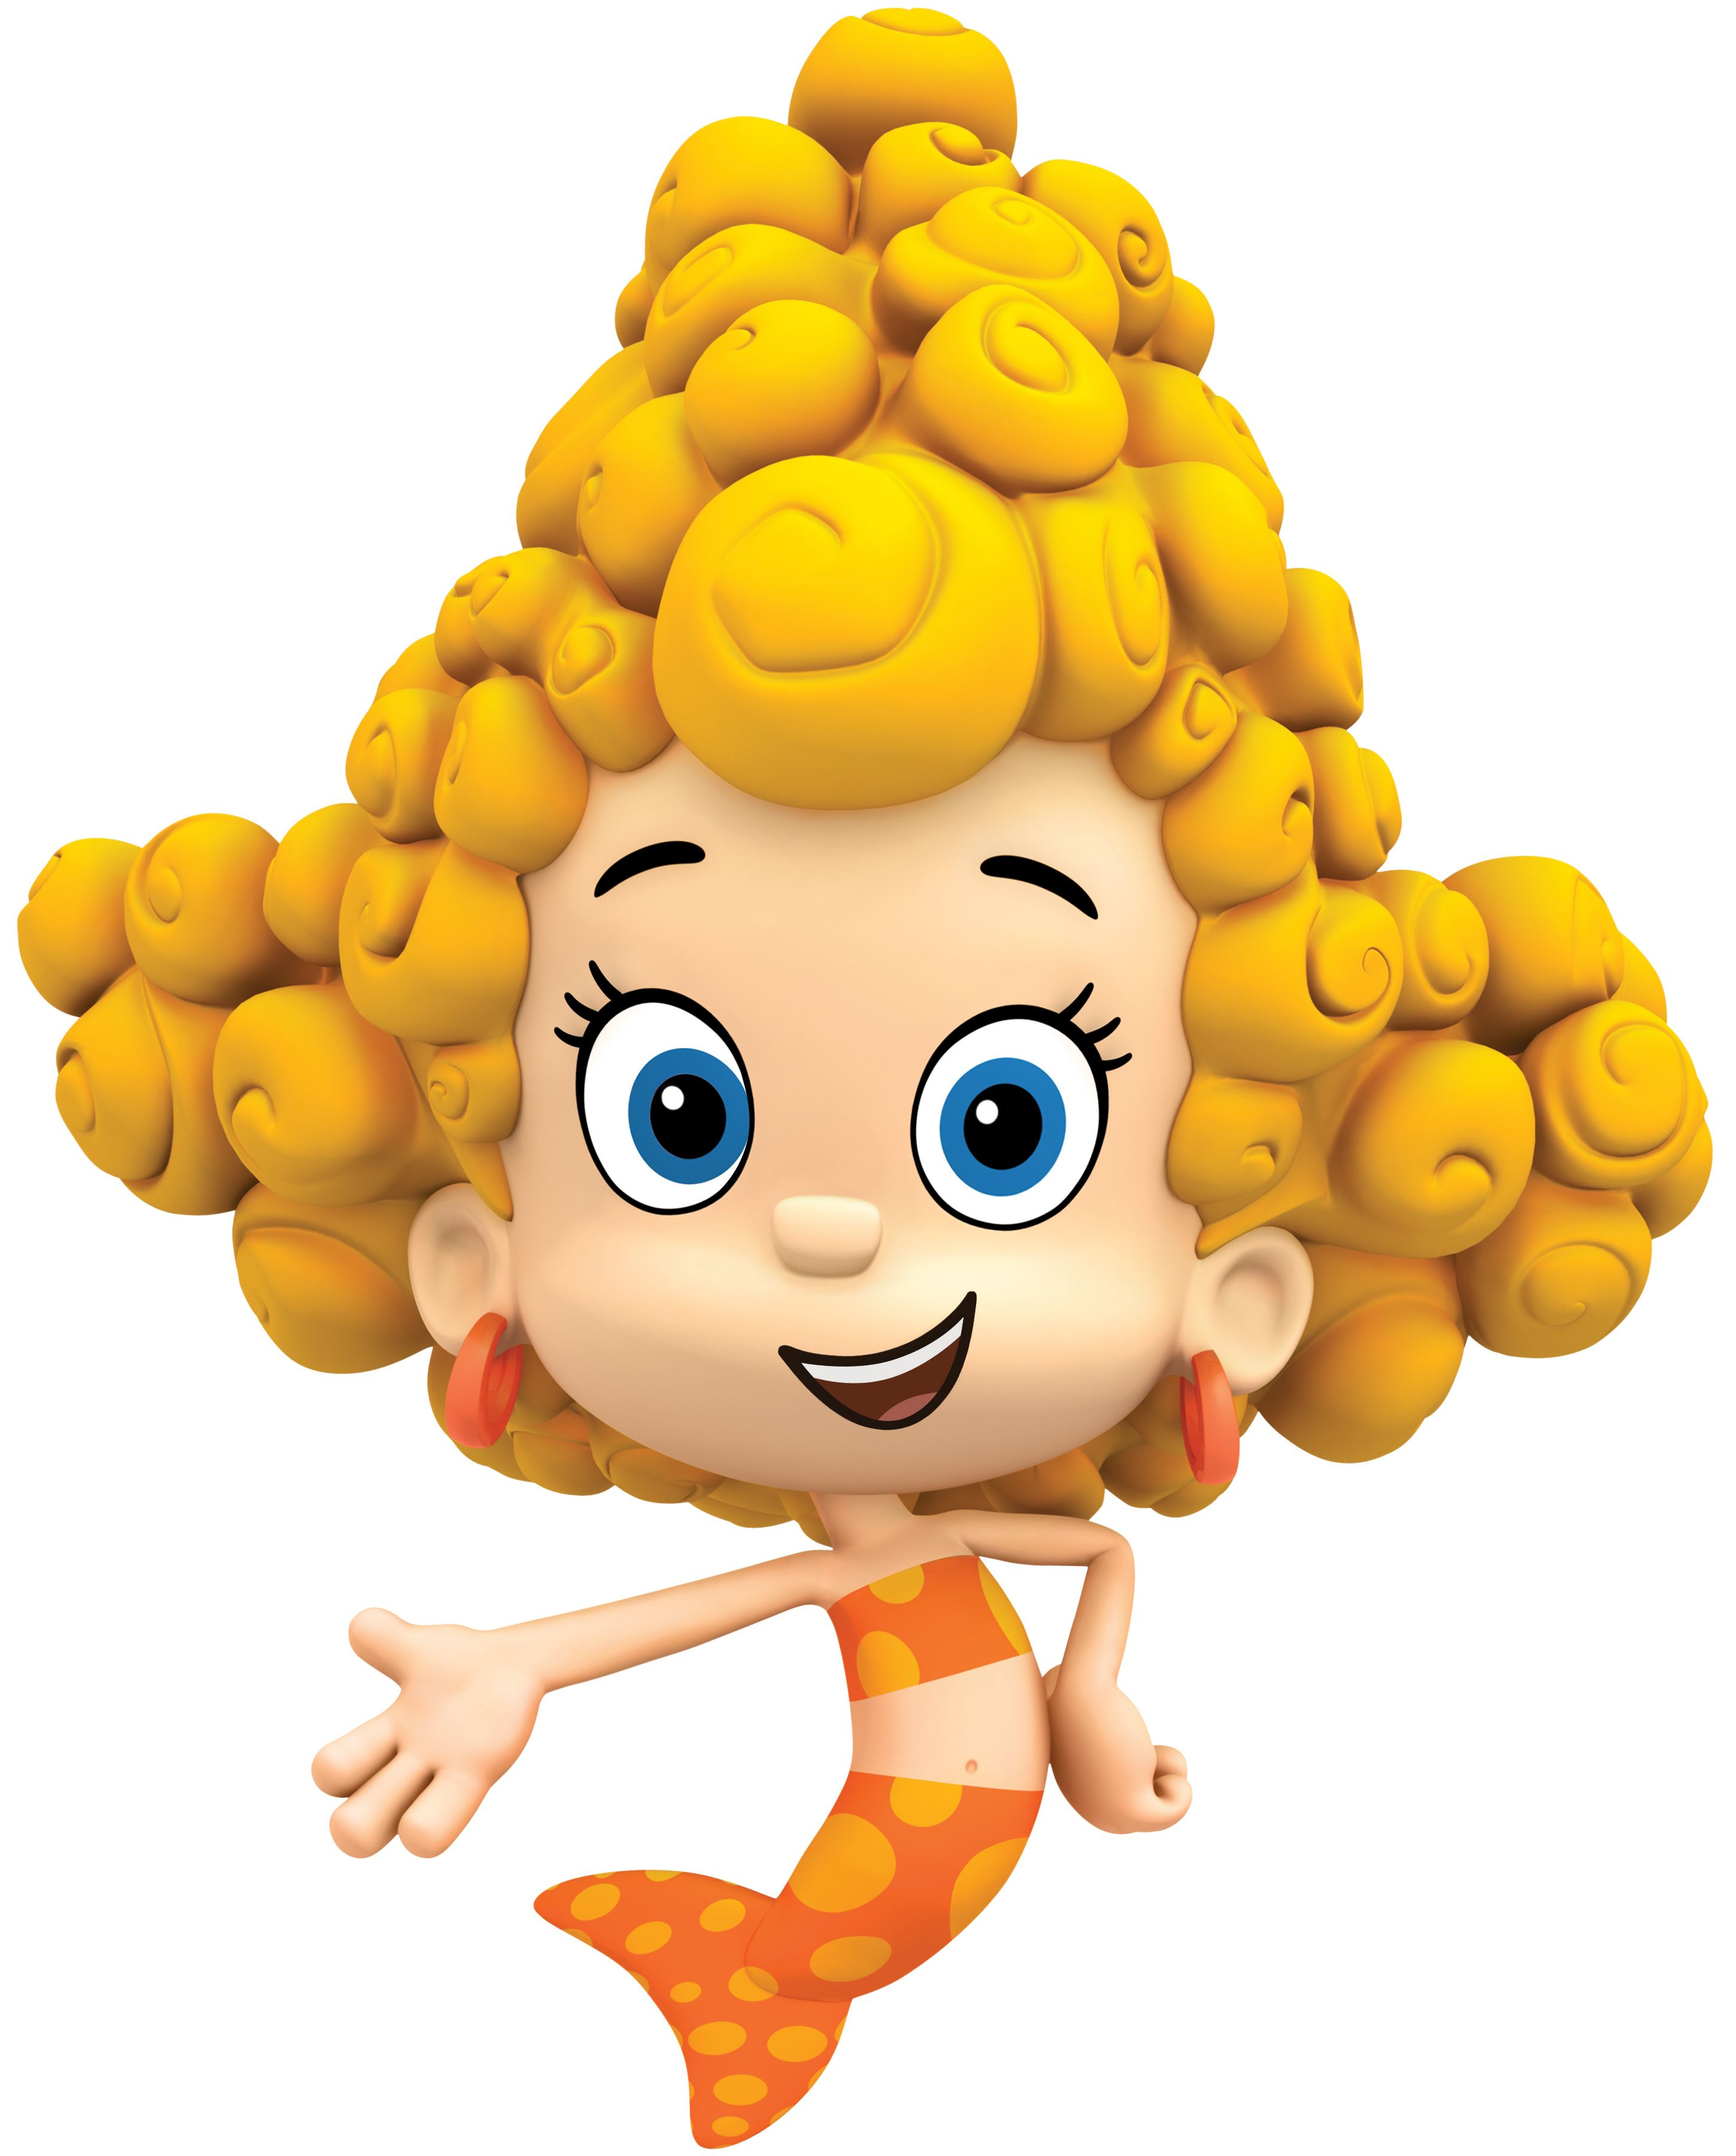 Do You Know These Bubble Guppies Characters Bubble Guppies Birthday Party Bubble Guppies Bubble Guppies Birthday